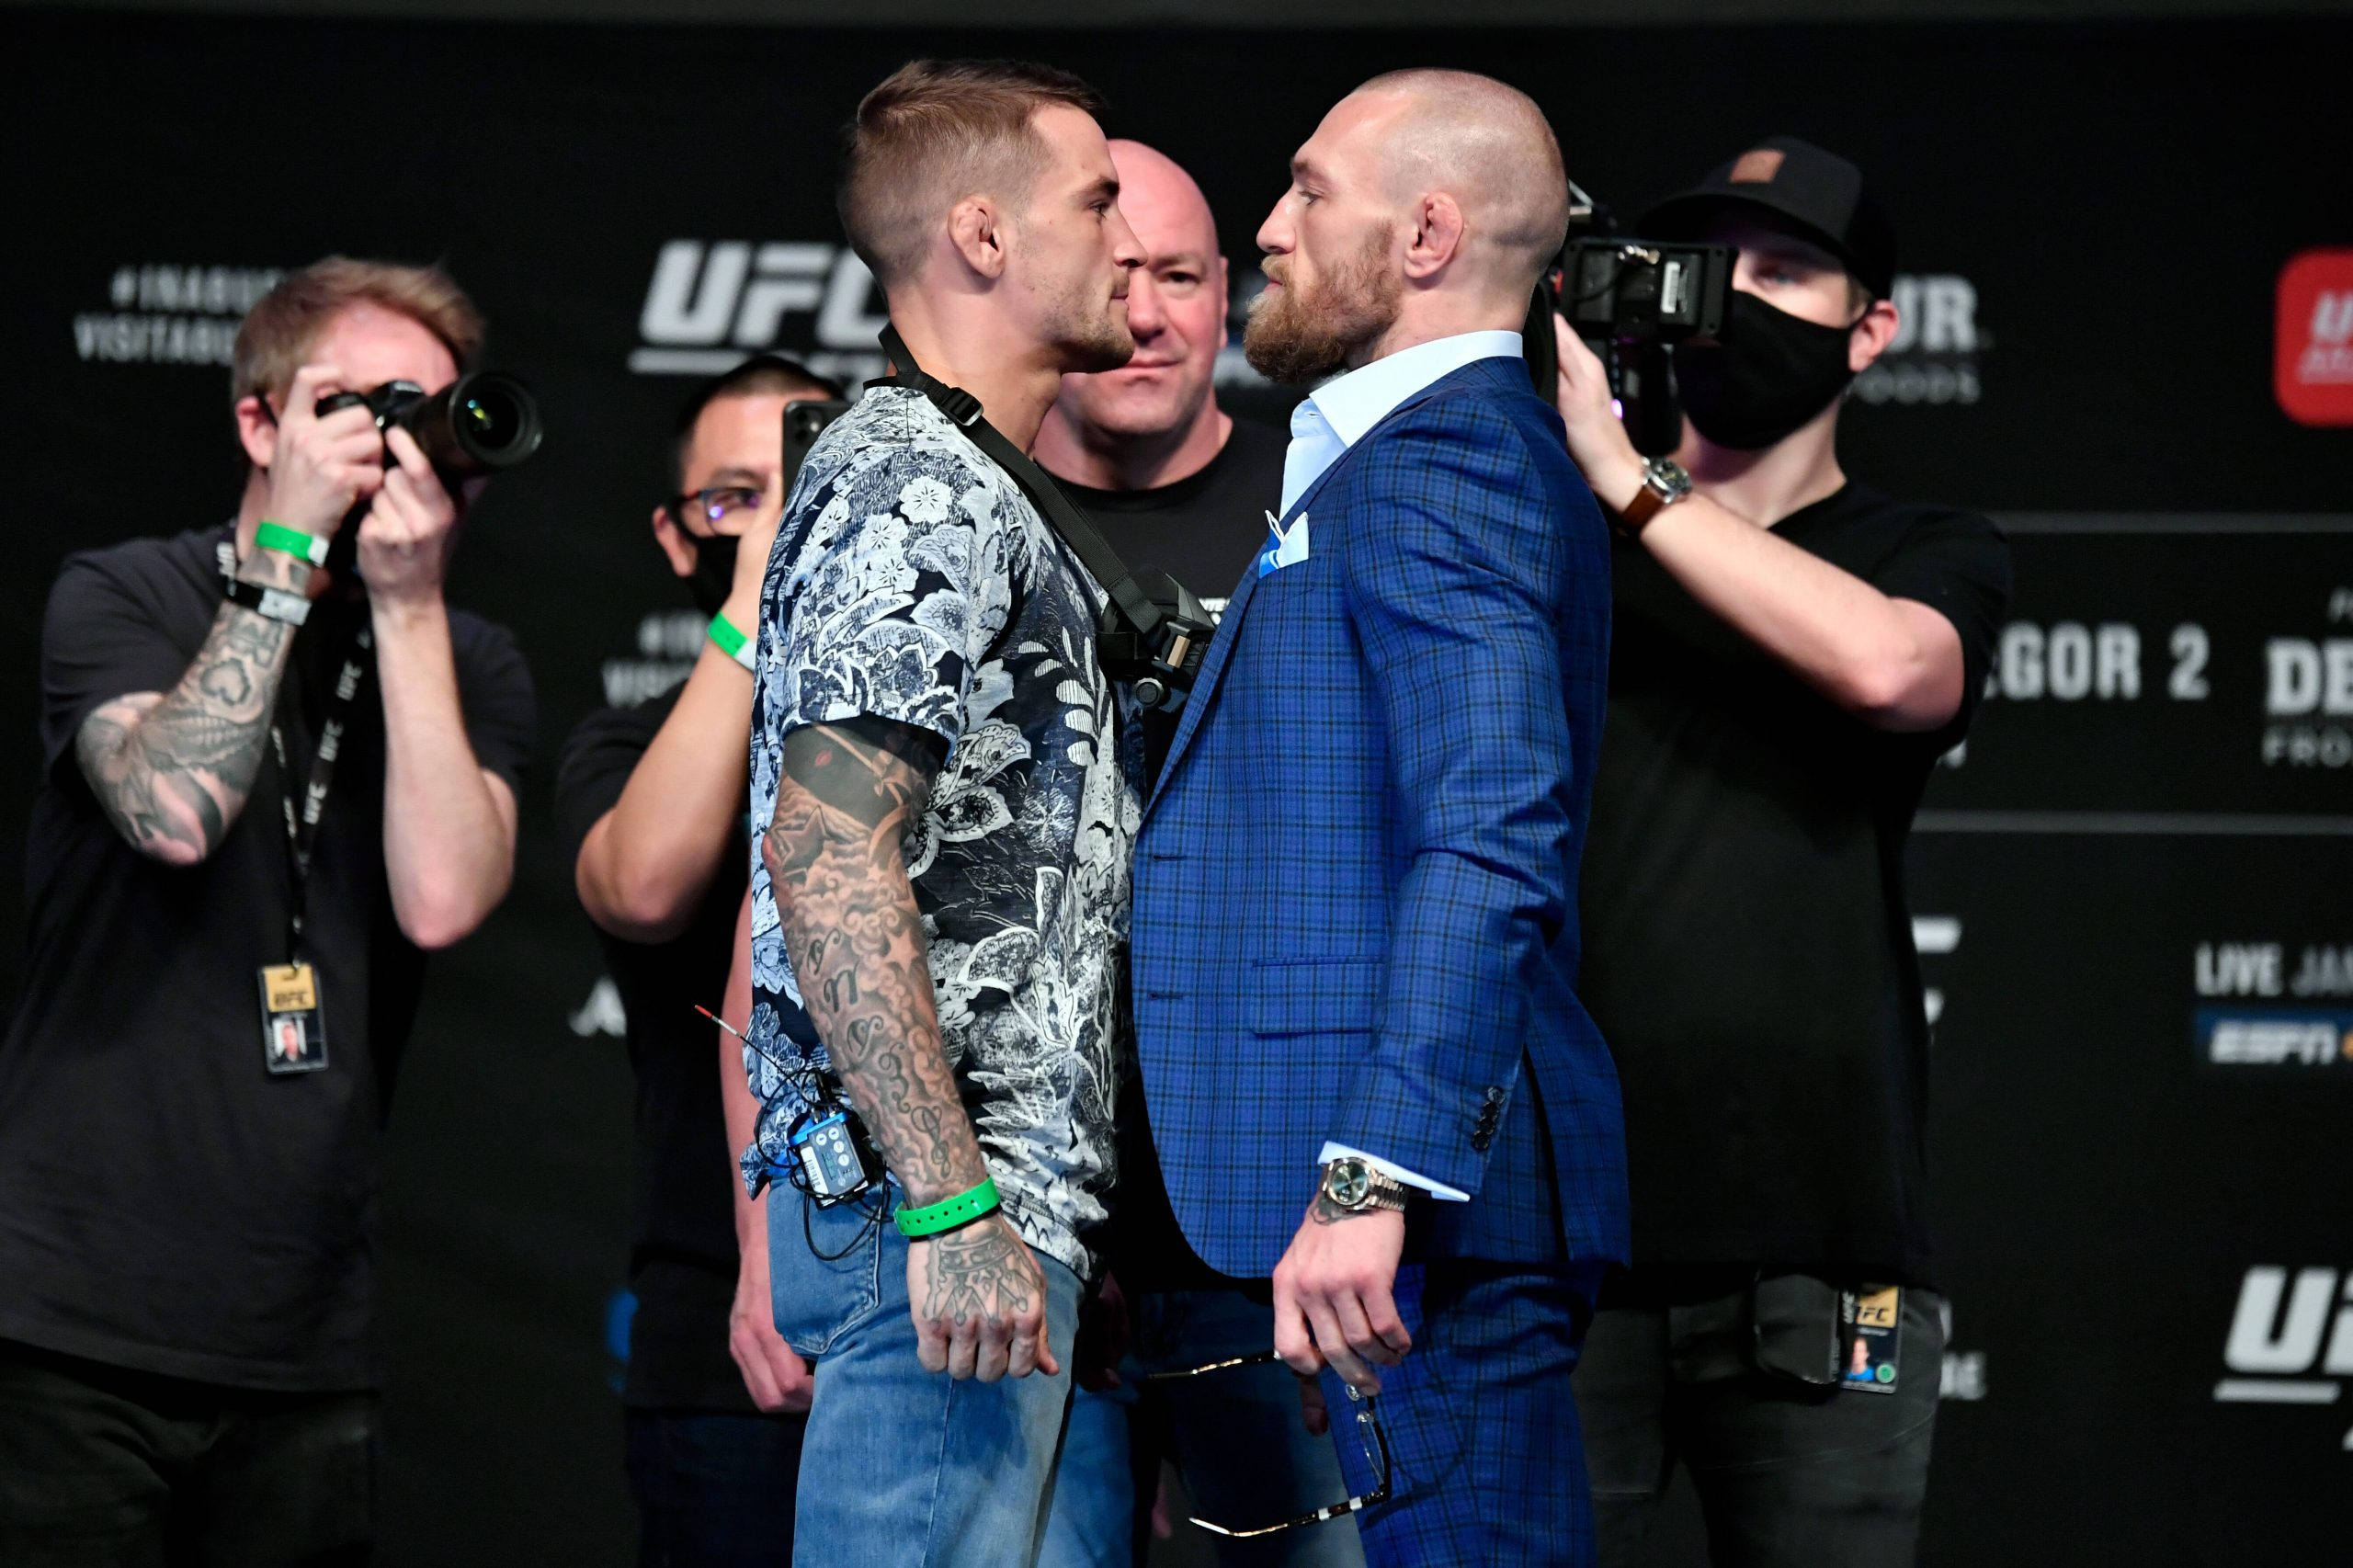 Dana White confirms McGregor vs Poirier trilogy with tickets on sale